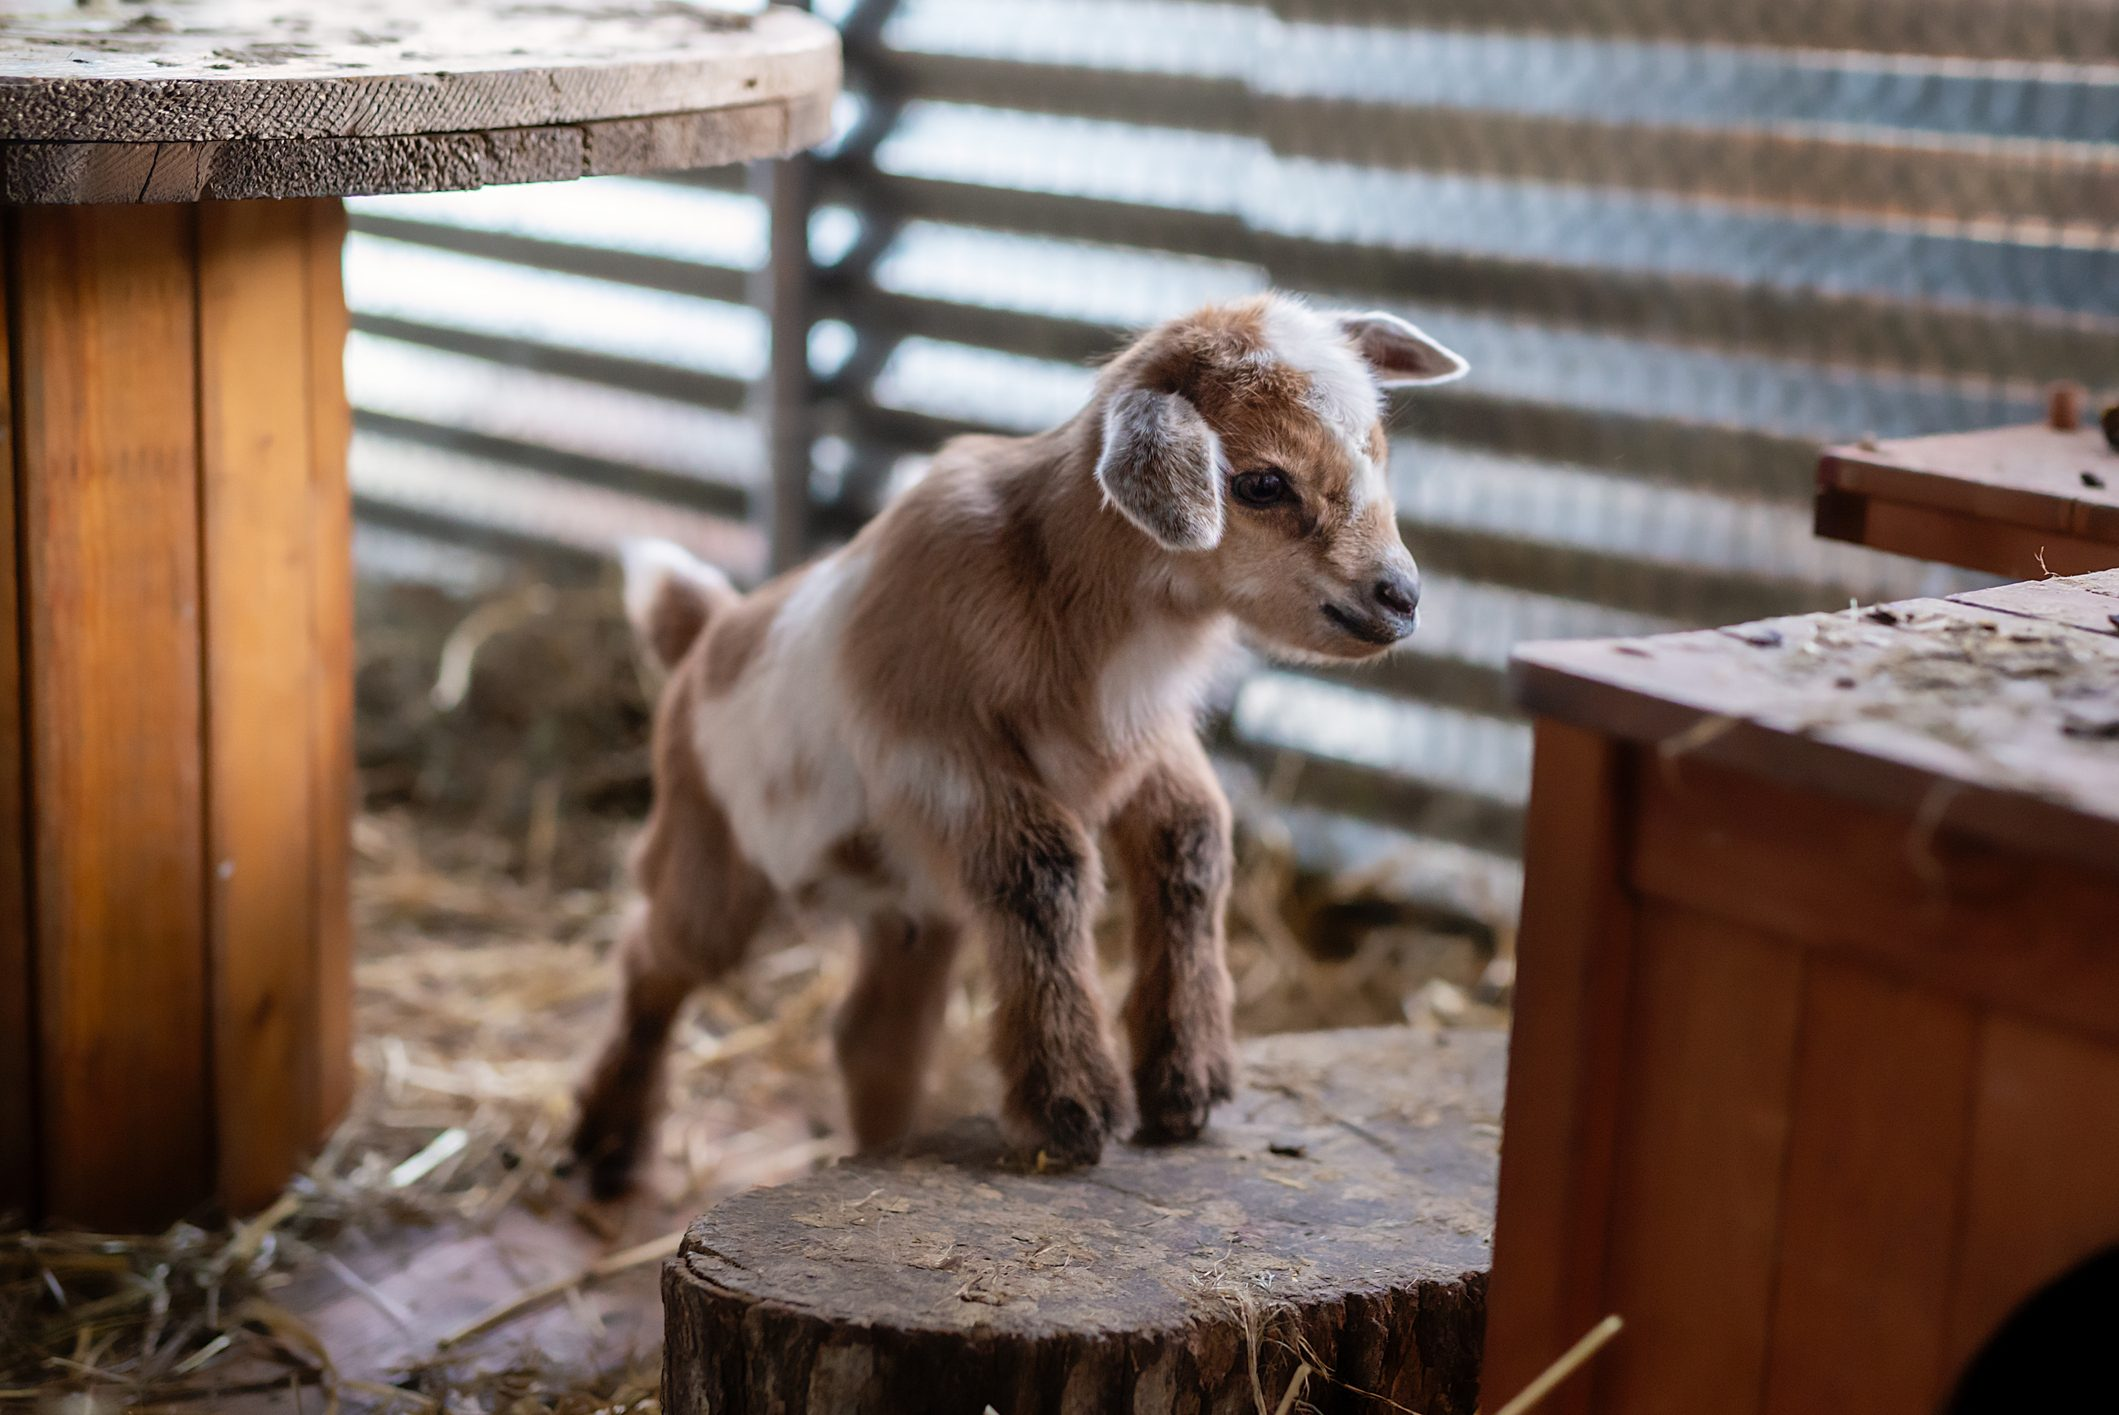 whole body view of a newborn baby goat in a pen